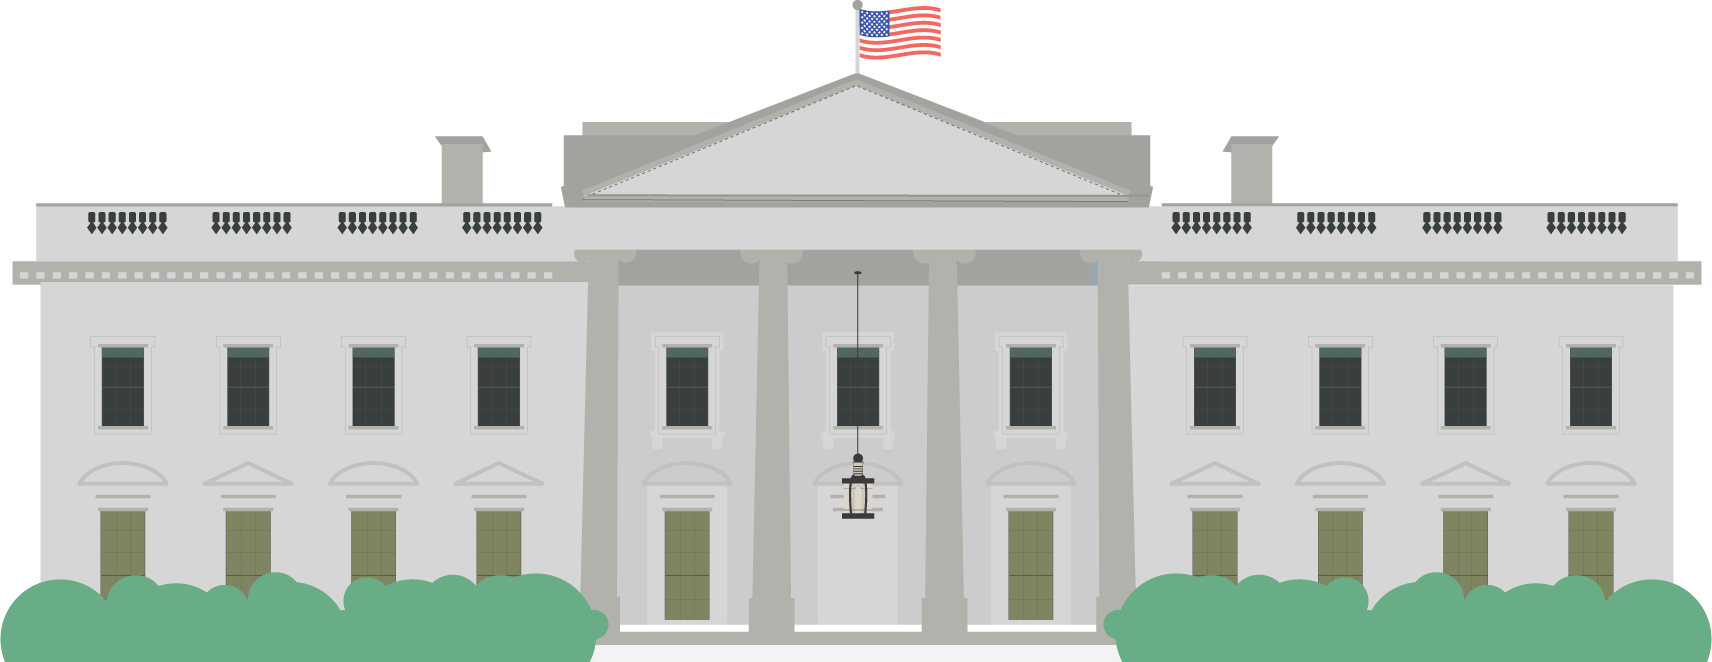 White House Background Images Transparent Background View Image